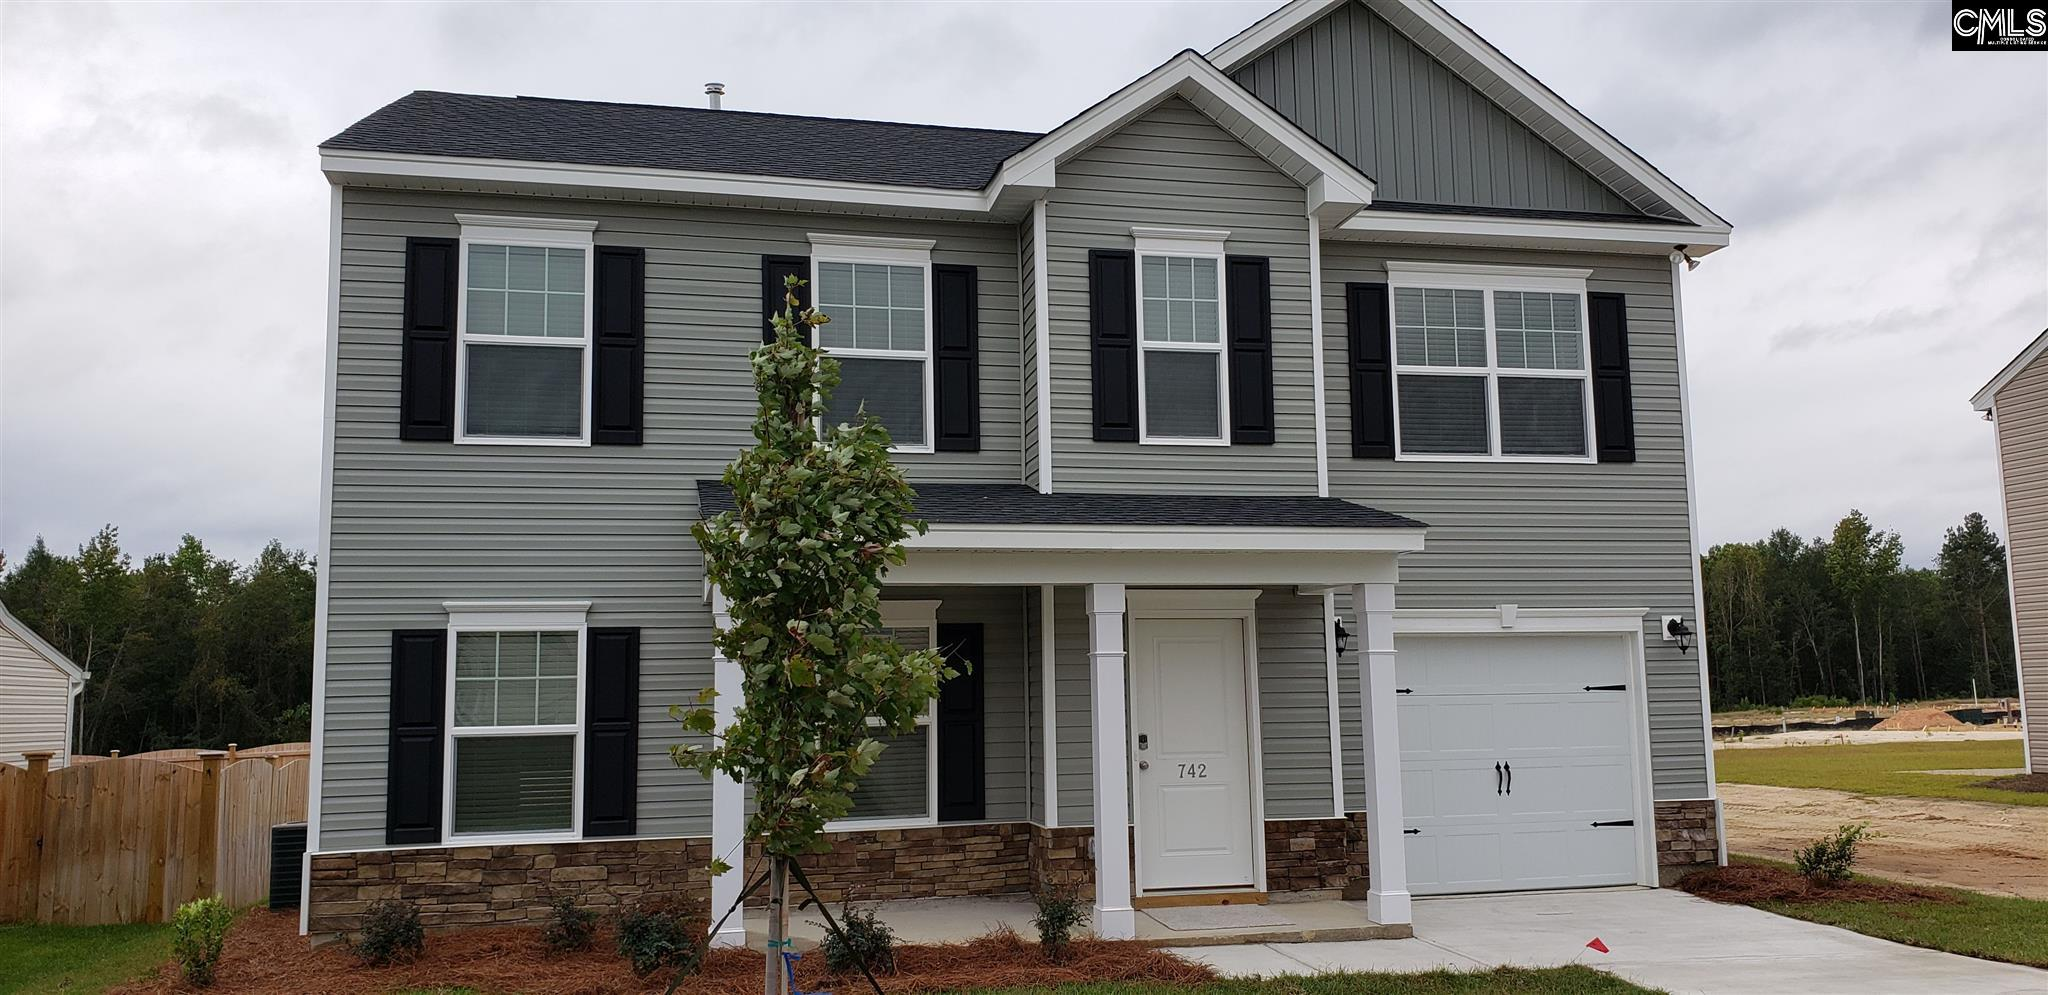 742 Lansford Bay West Columbia, SC 29172